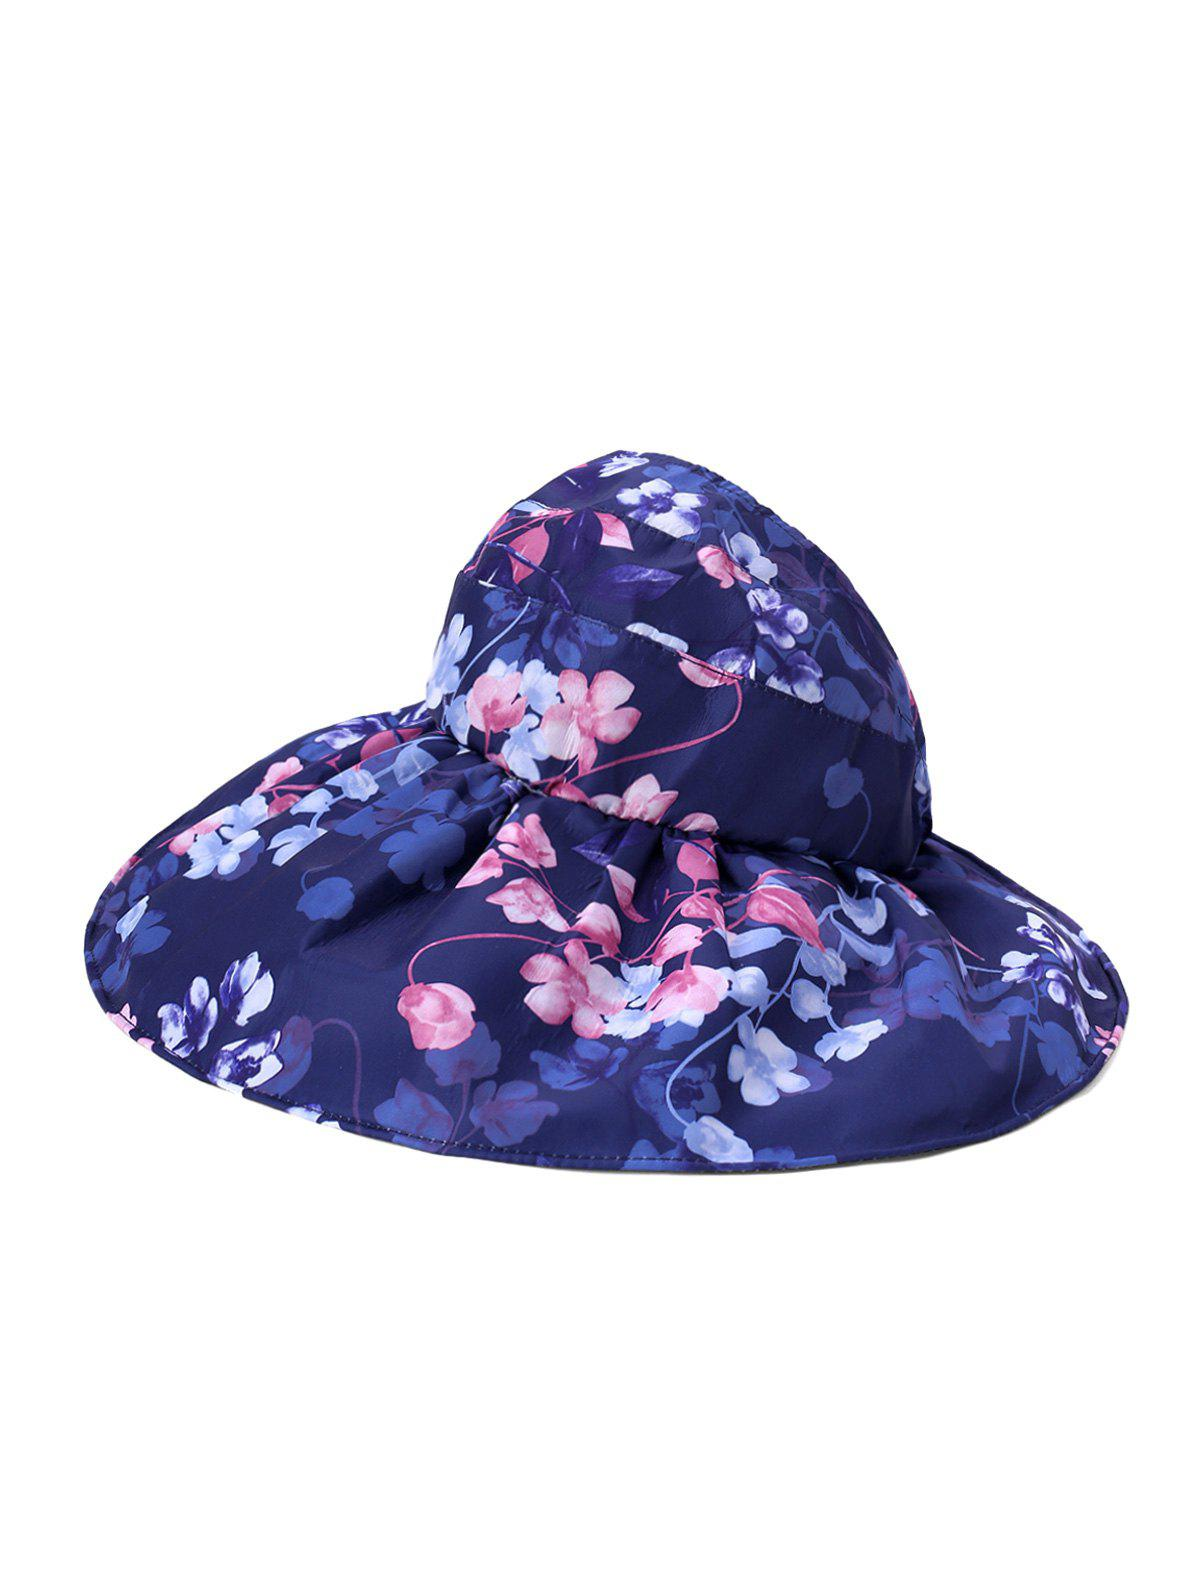 Hot Foldable Flower Pattern Summer UV Protection Visor Cap